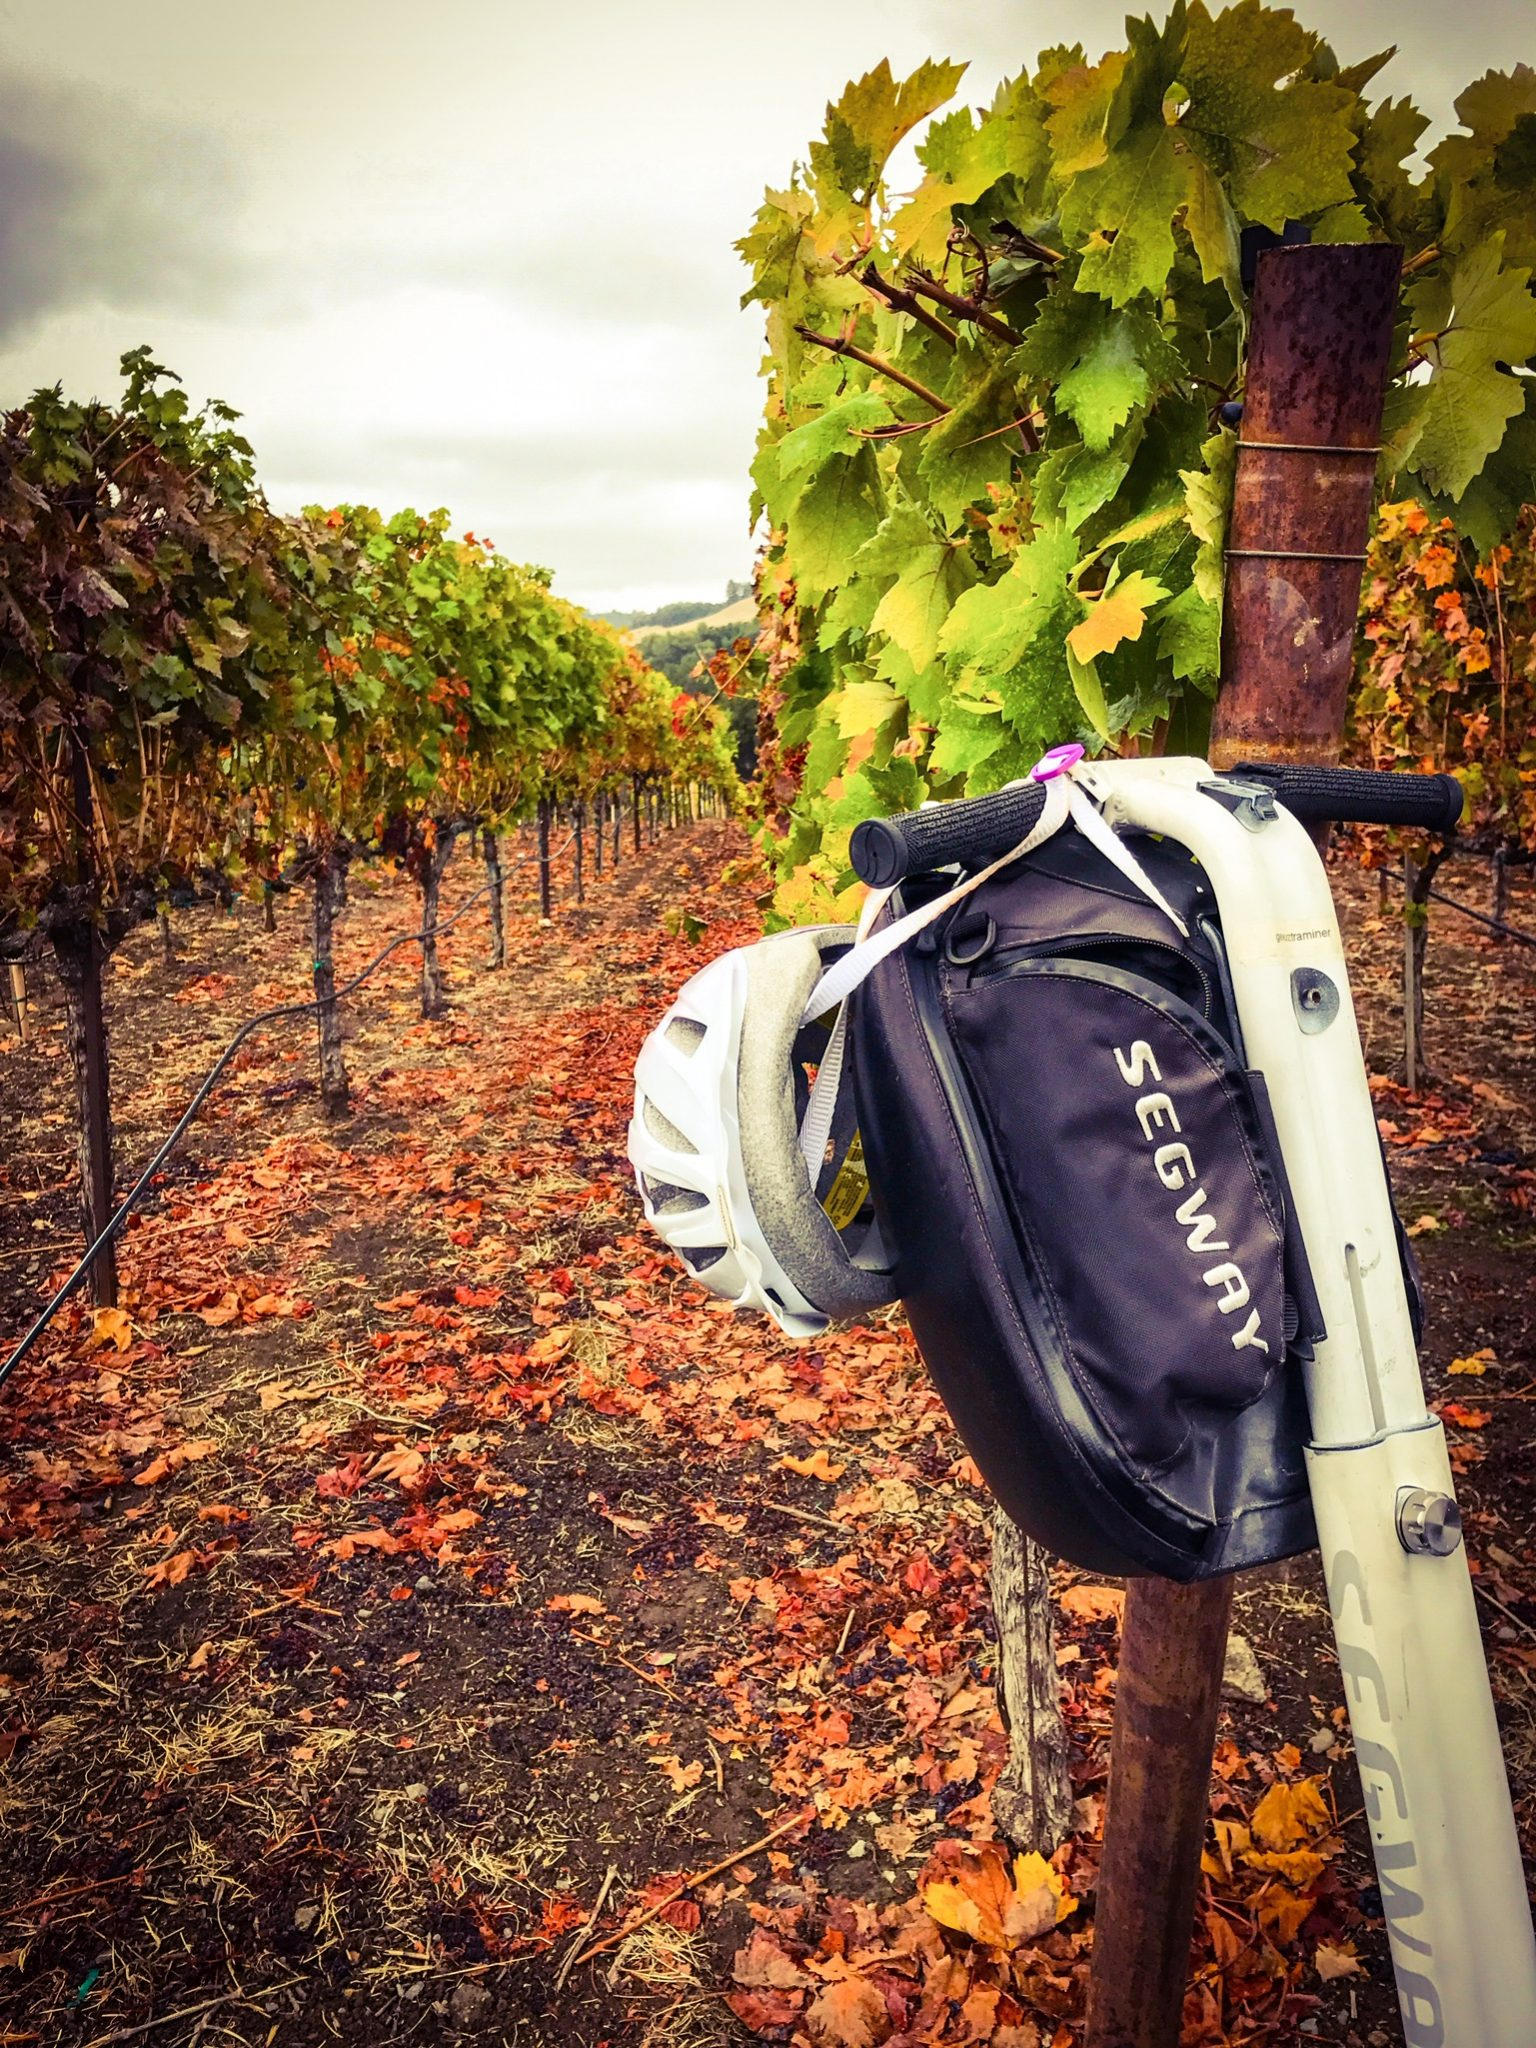 Sonoma-County-Wineries-Segway-Tour